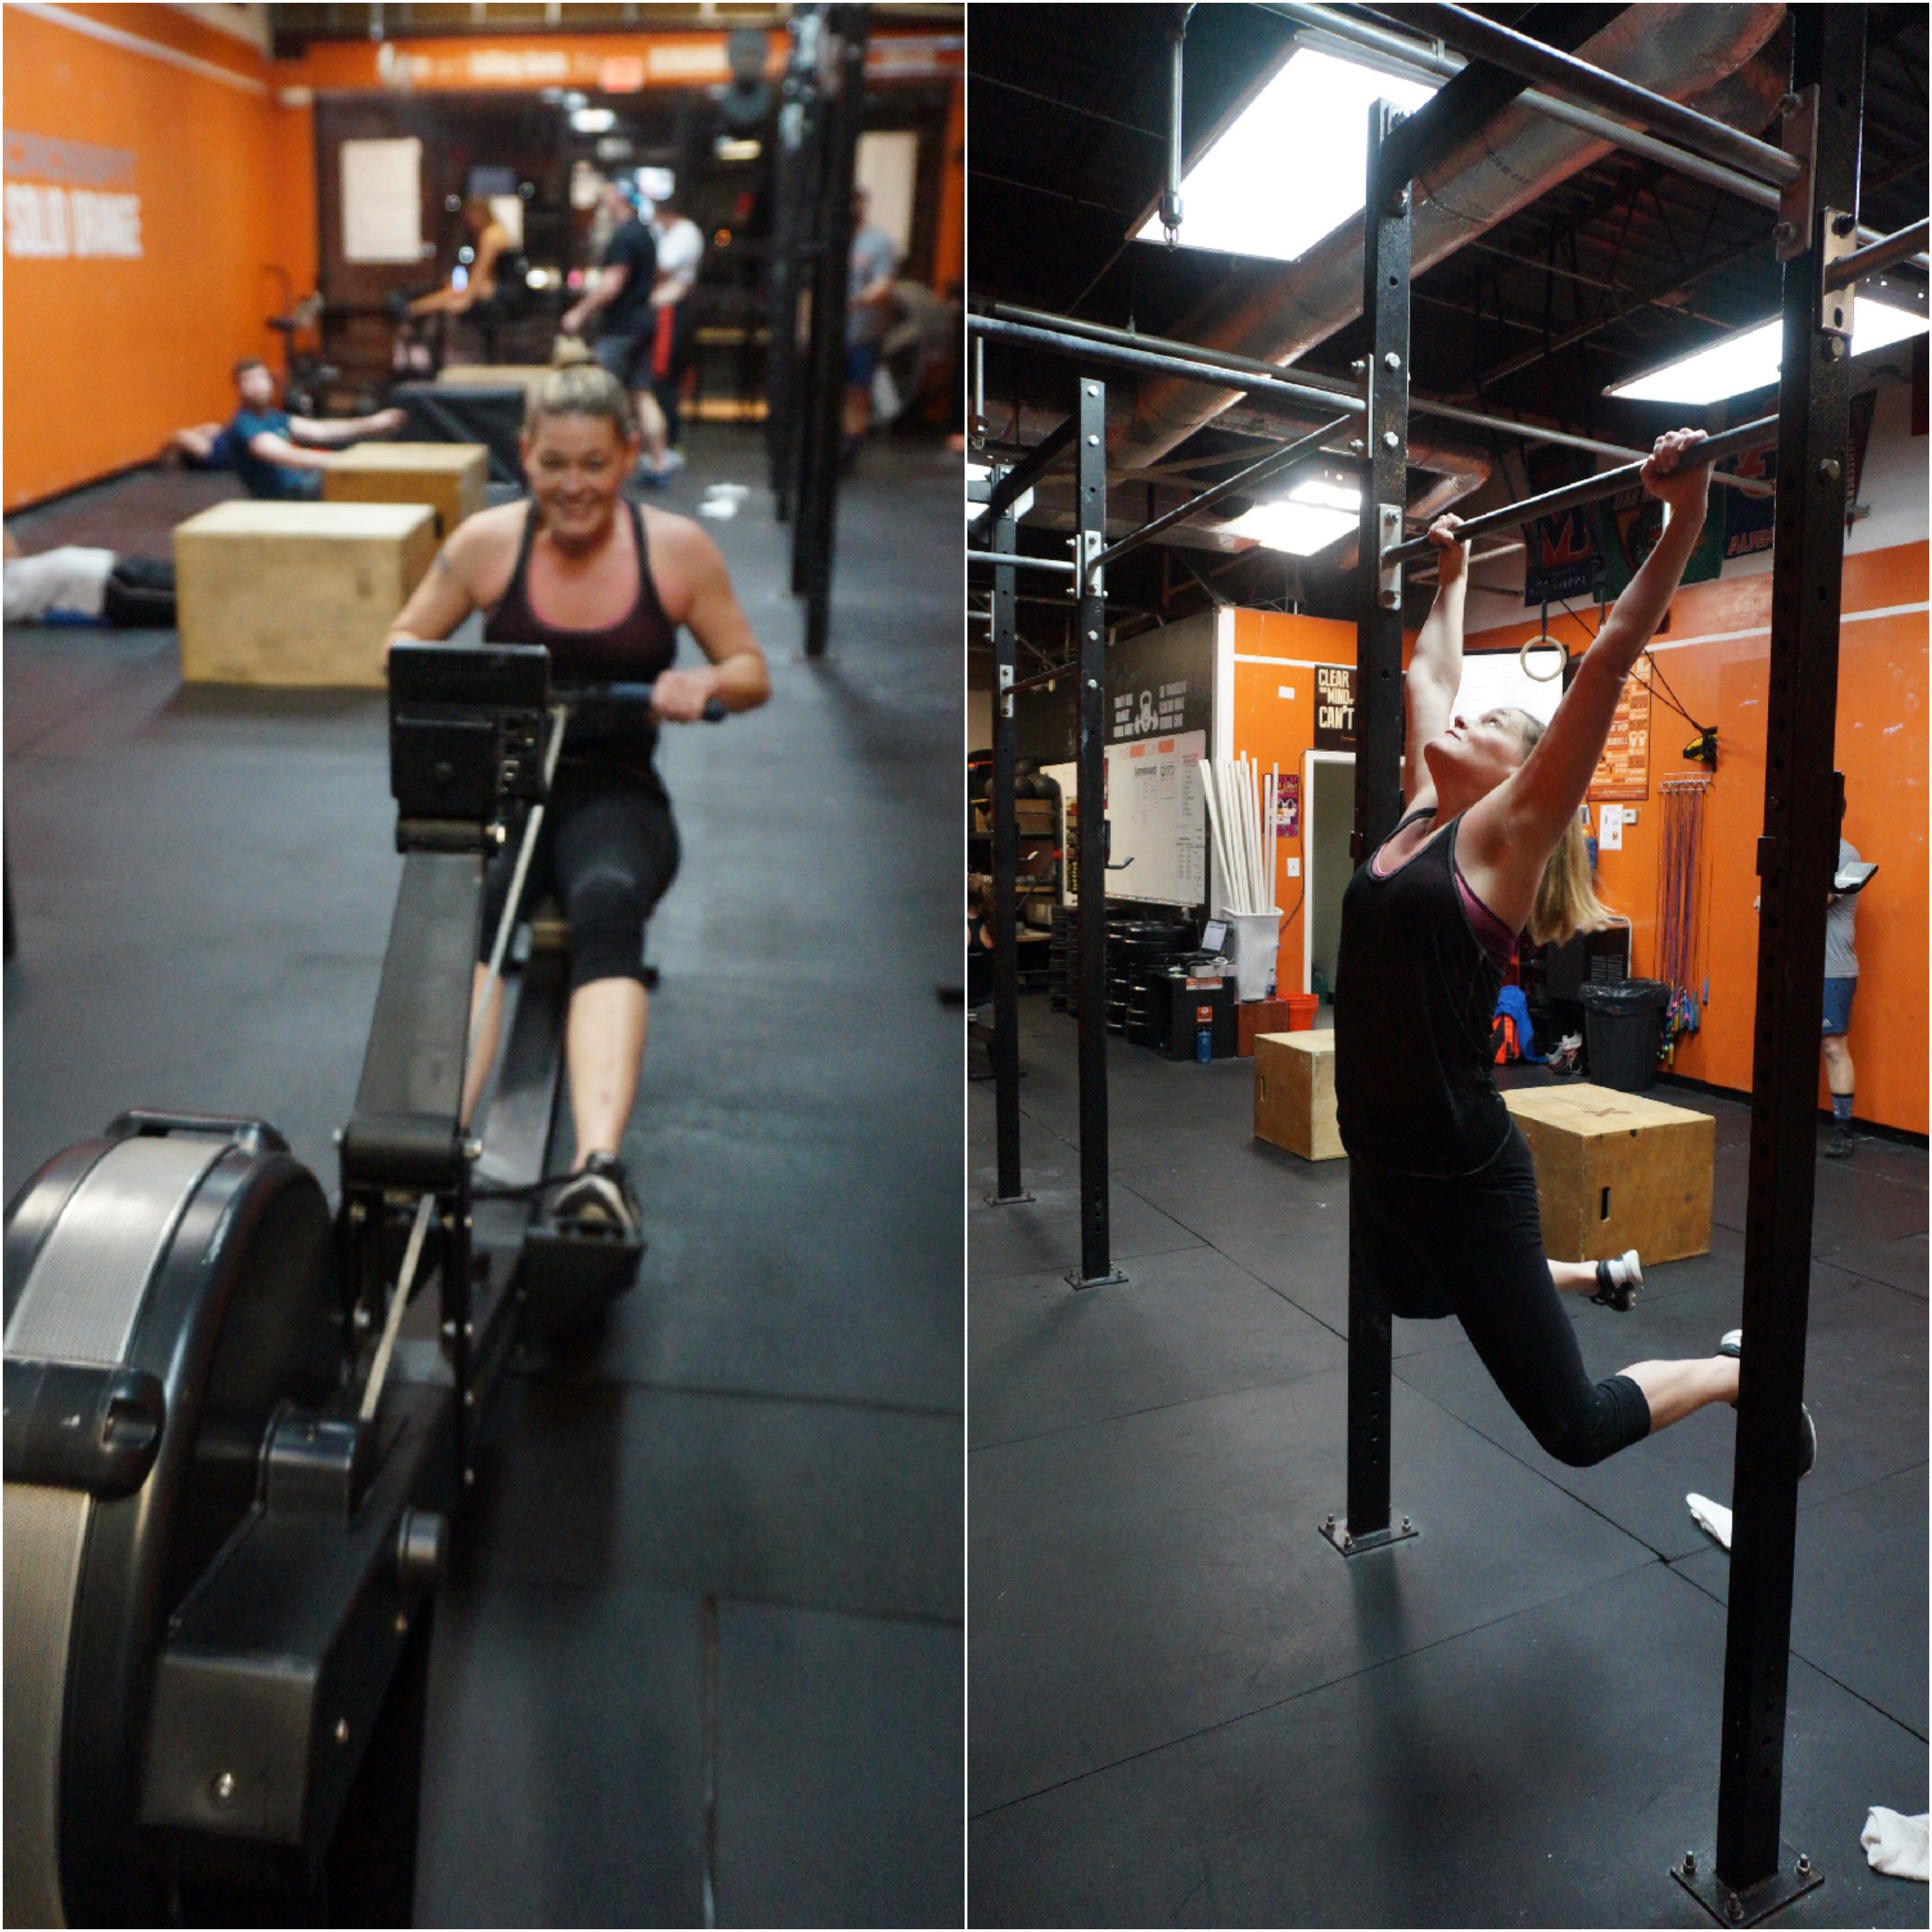 find group training bellevue - Athlete of the Month: Amy Kight